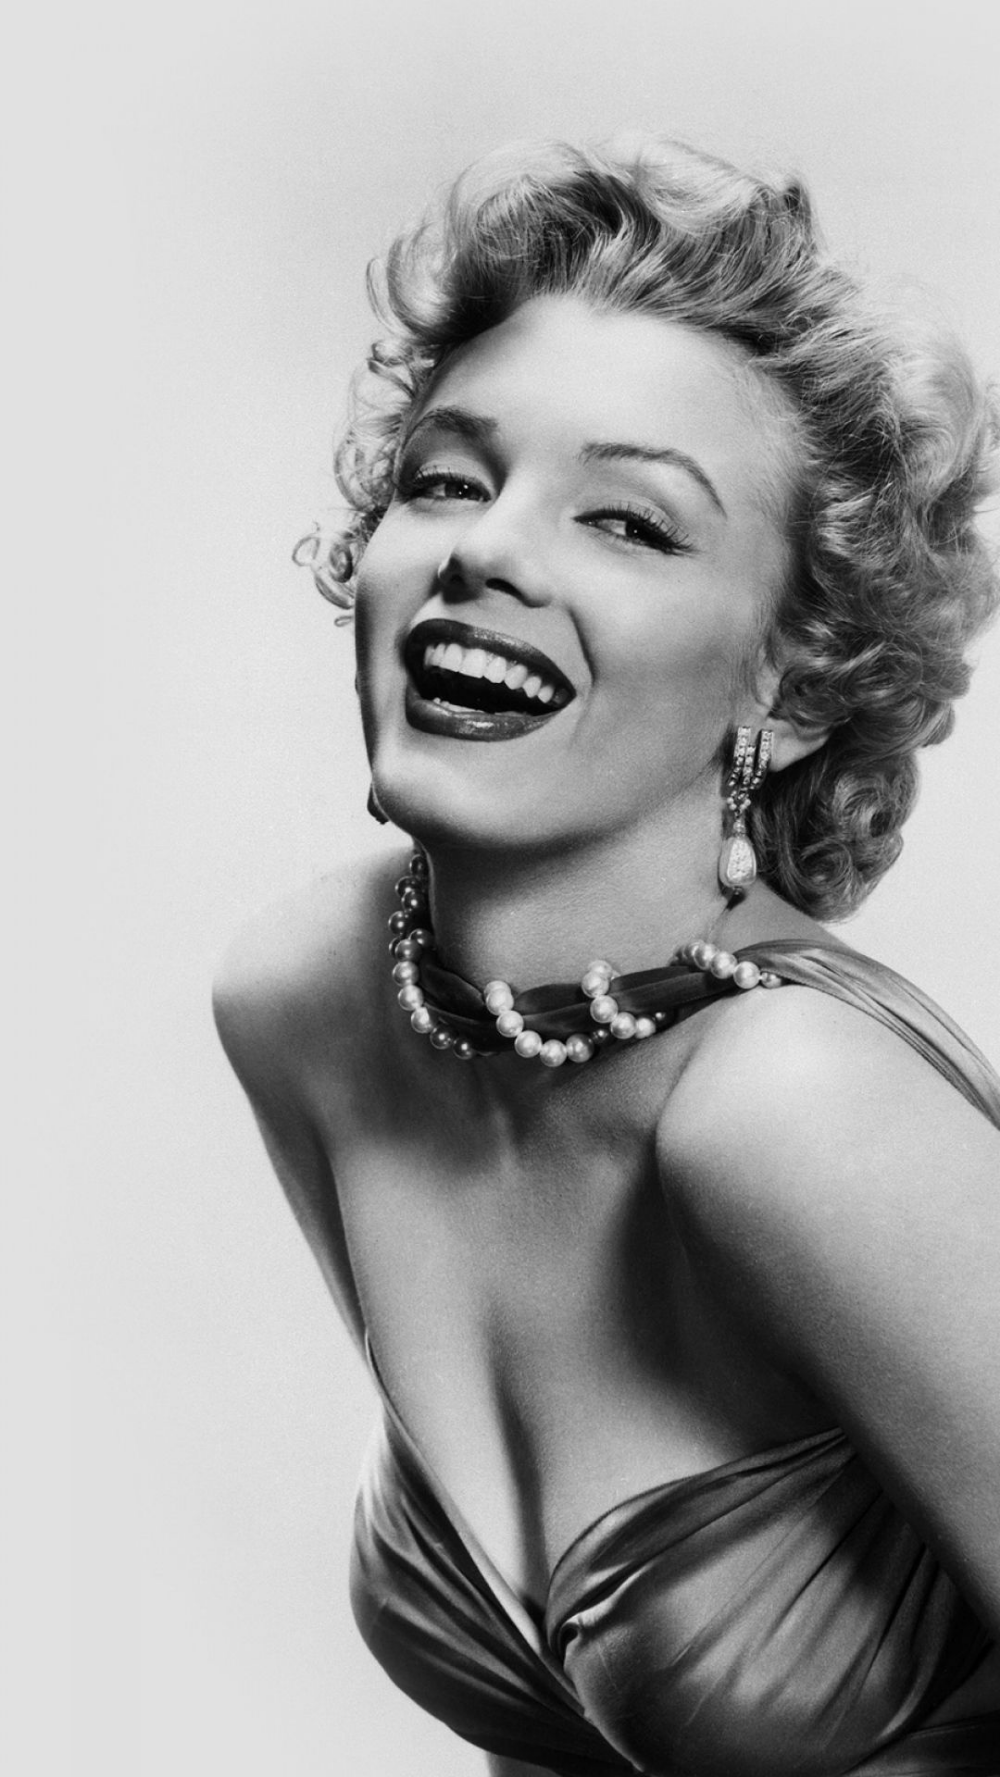 Marilyn Monroe Iphone Wallpaper Marilyn Monroe Hd Wallpaper Download Marilyn Monroe Wallpaper Marilyn Monroe Portrait Marilyn Monroe Artwork